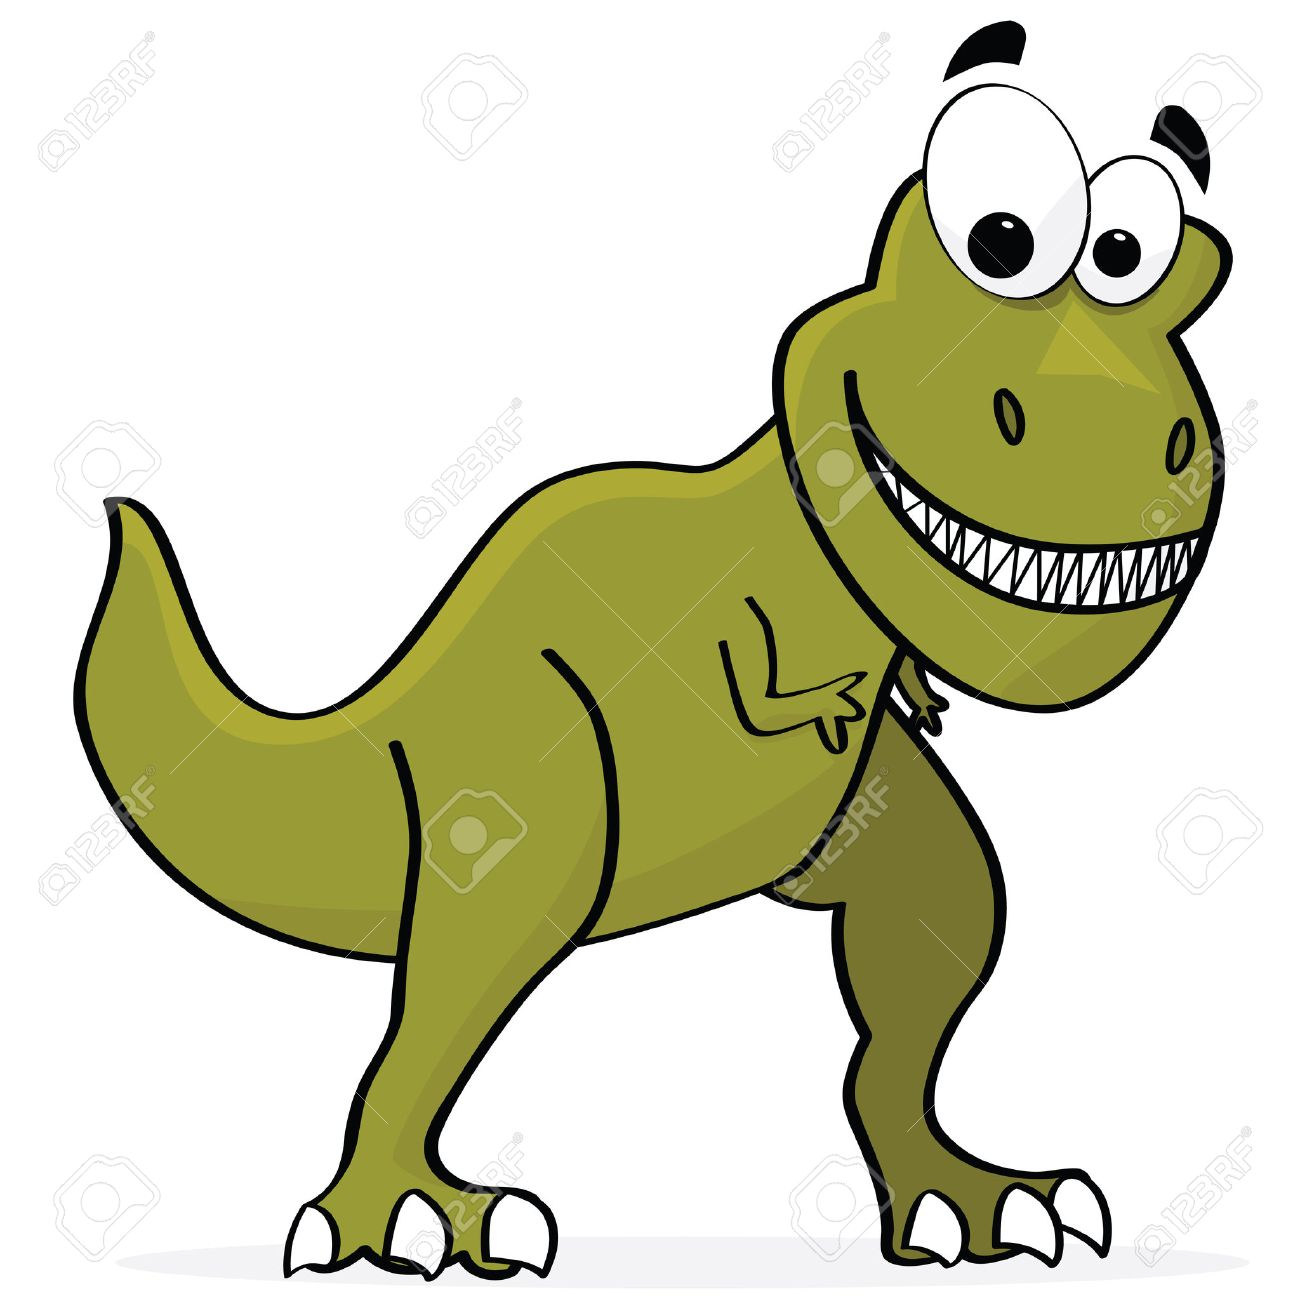 Cartoon illustration of a cute T-Rex dinosaur Stock Vector - 8020932